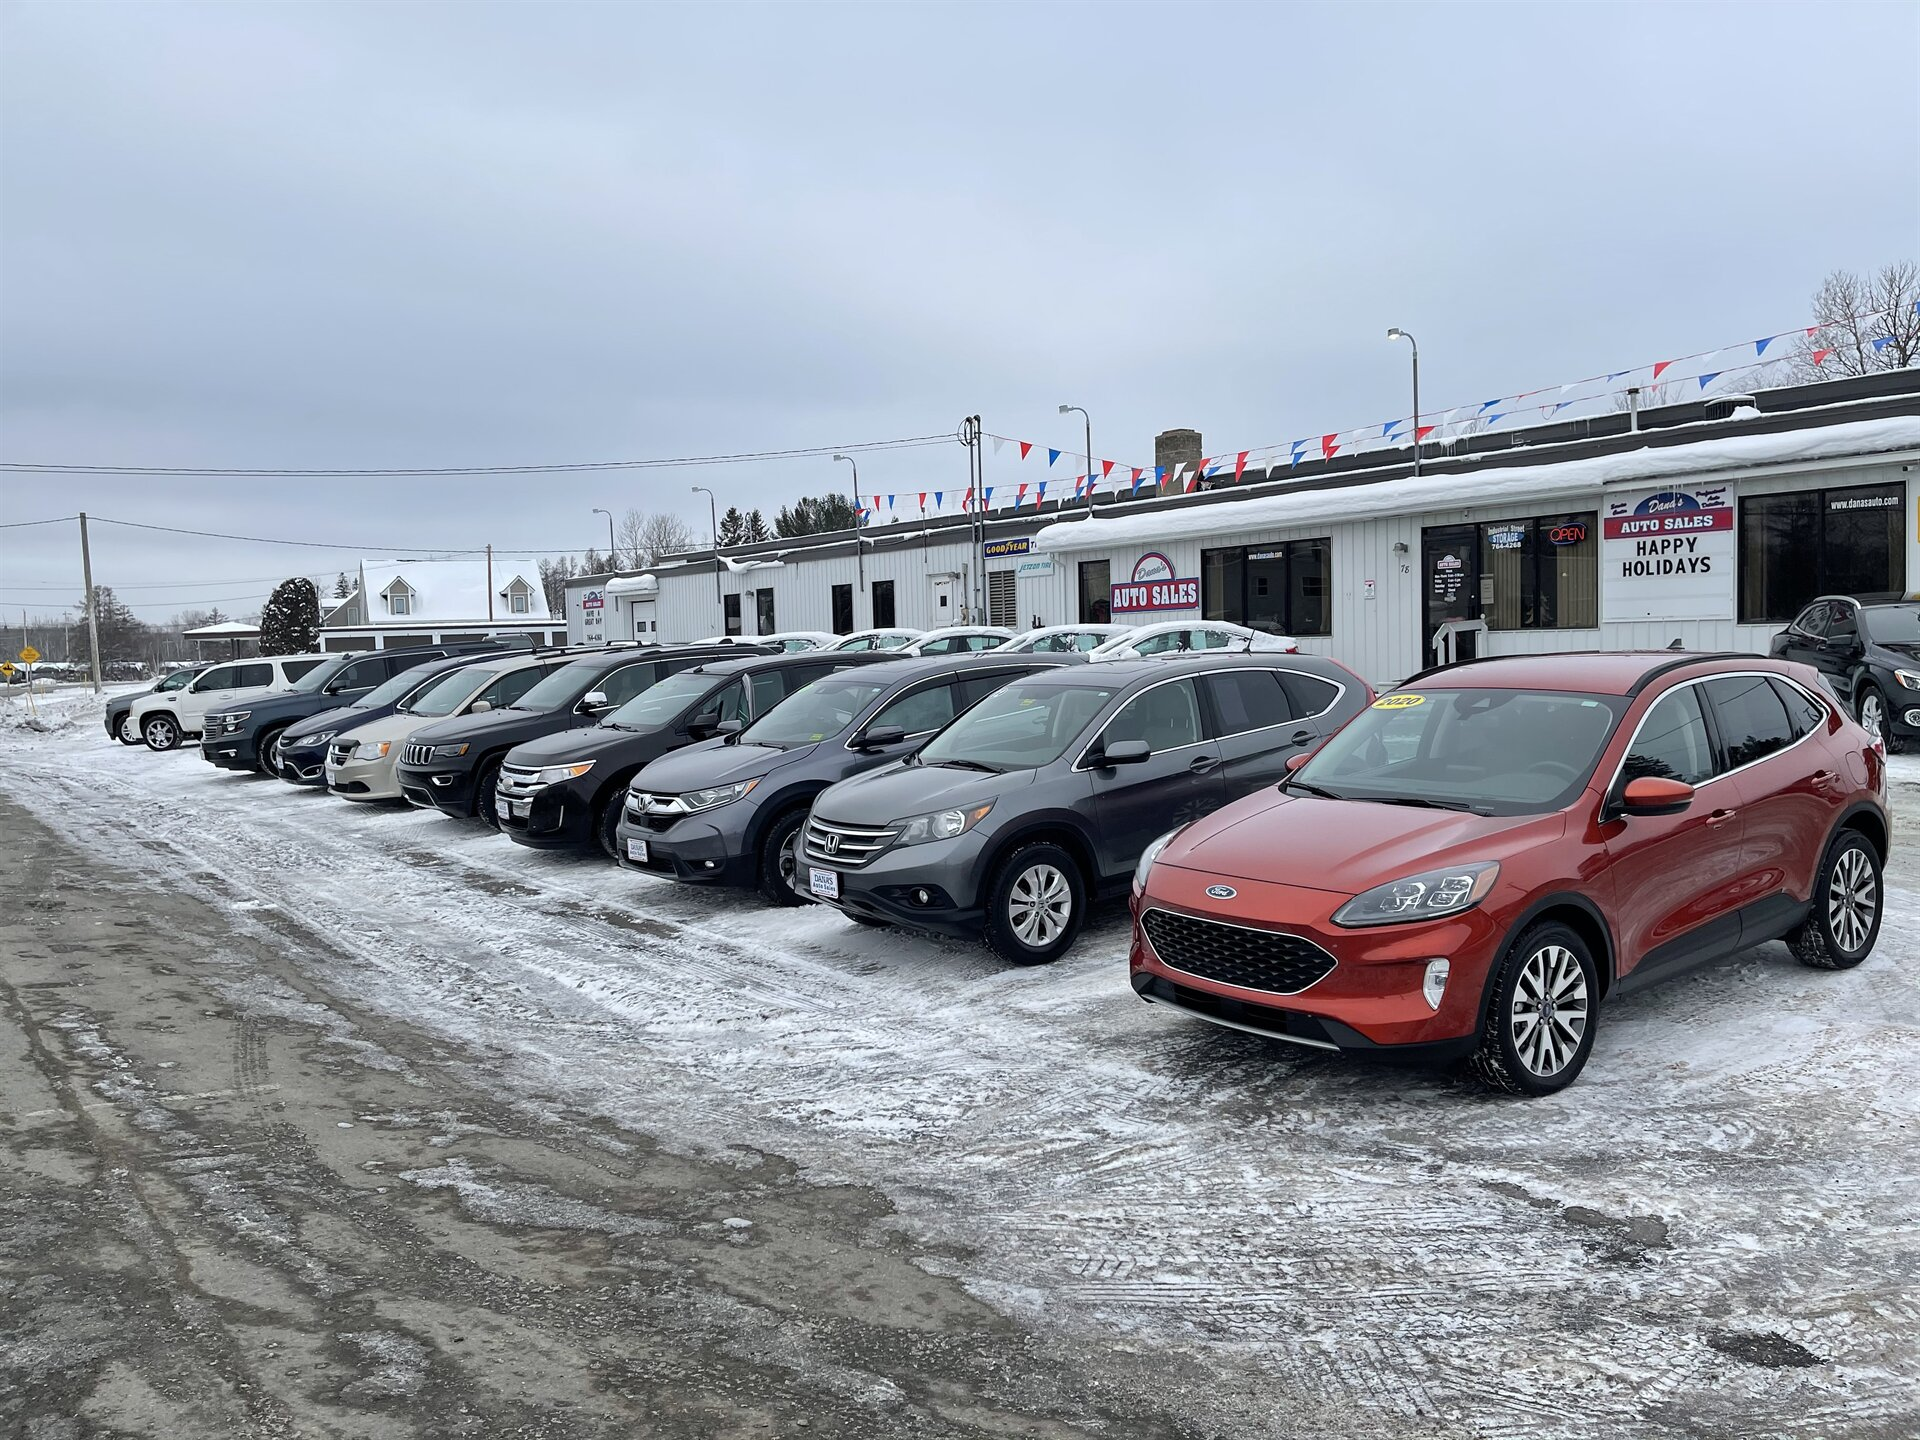 Dana's Auto Sales in Presque Isle, Maine - Quality Pre-Owned Cars, Trucks, SUVs and Mini Vans